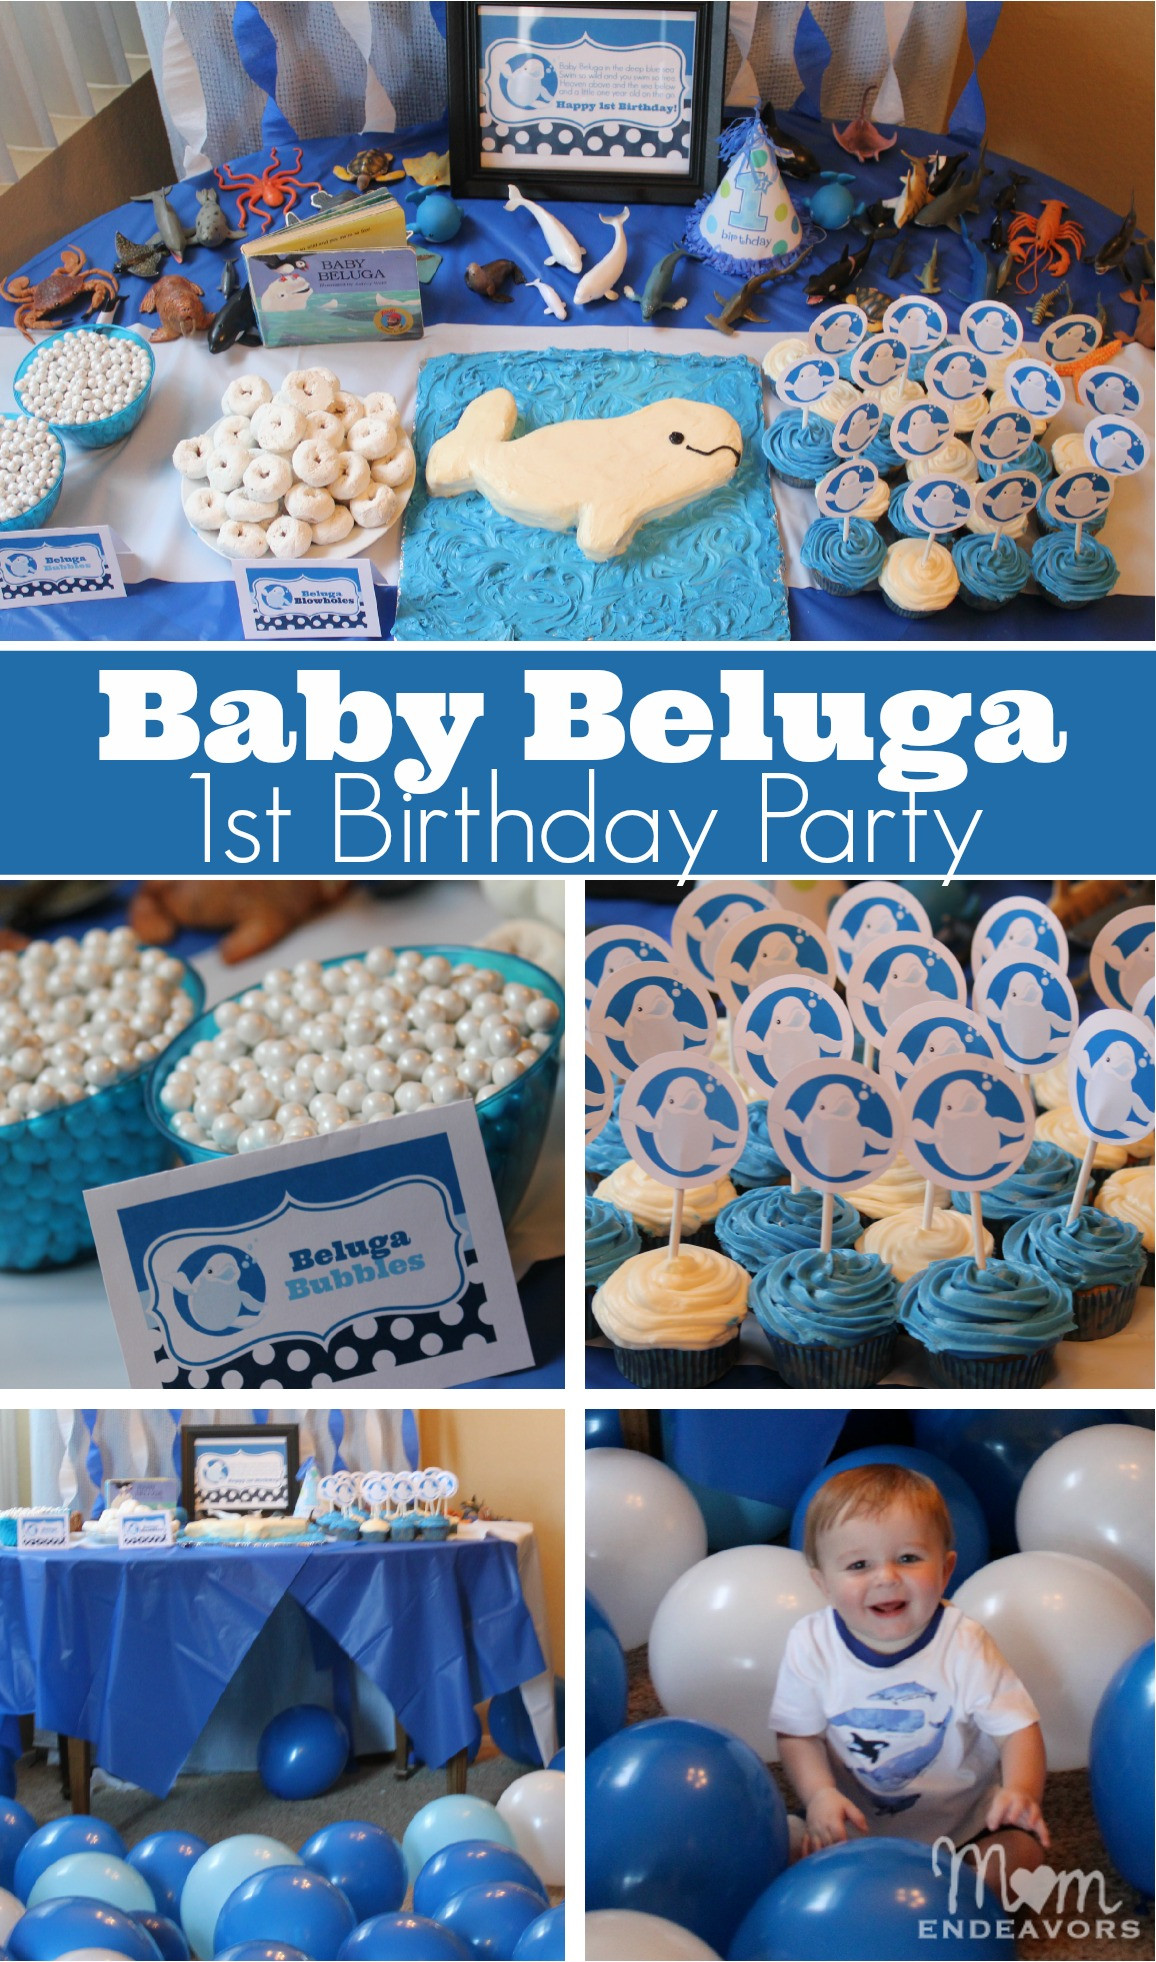 Best ideas about First Birthday Party Themes Boys . Save or Pin Baby Beluga 1st Birthday Party Now.